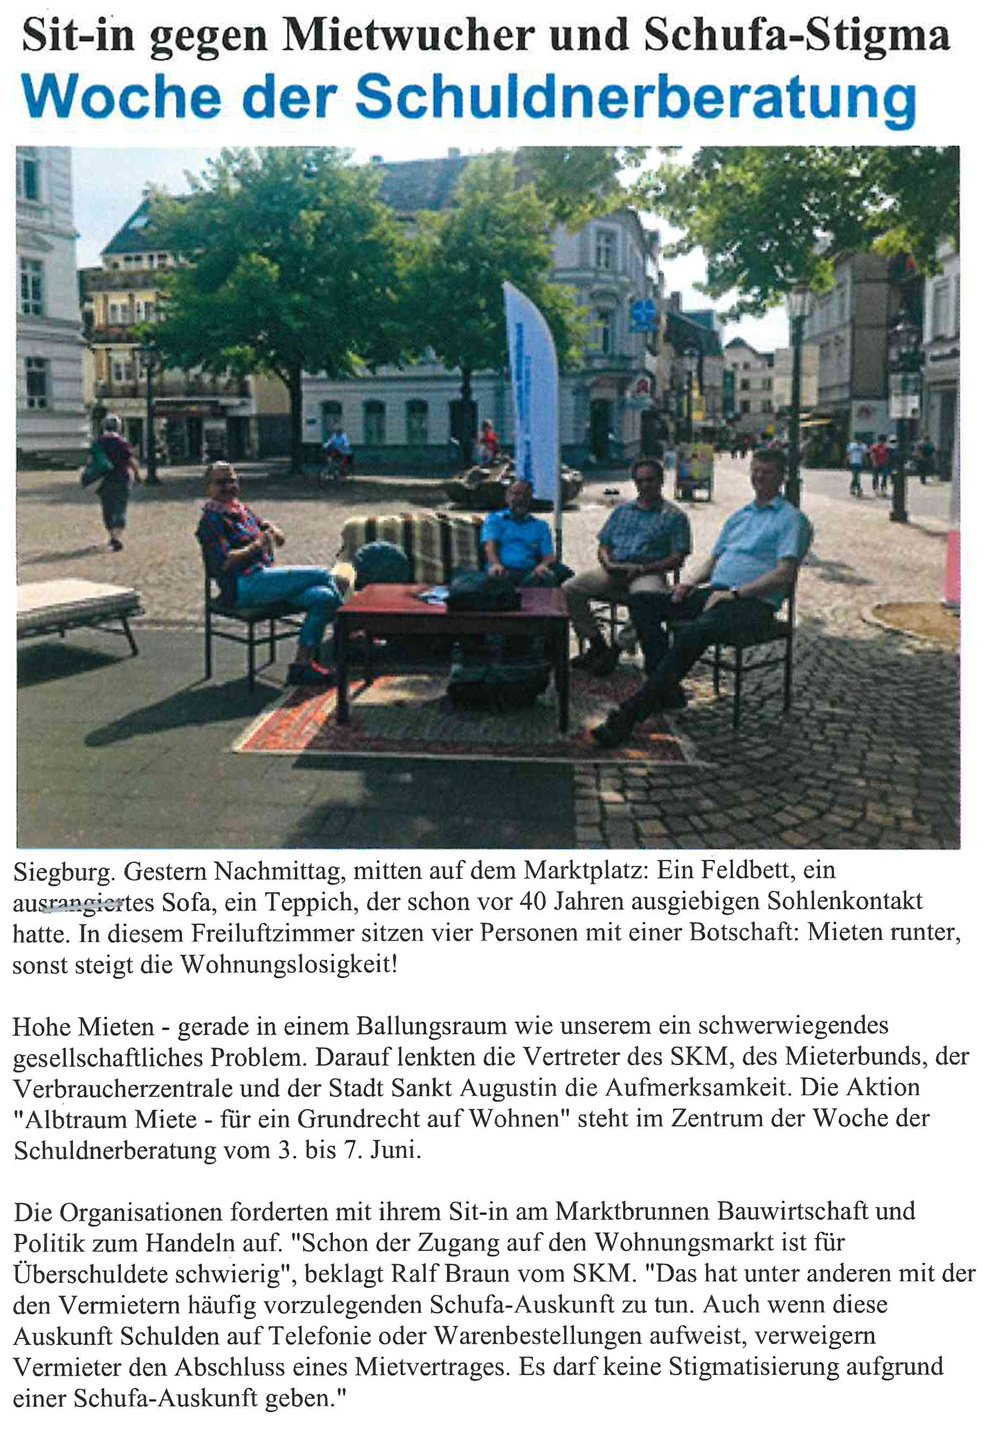 19-06-06 SB-Siegburg-Newsletter 05.06.2019